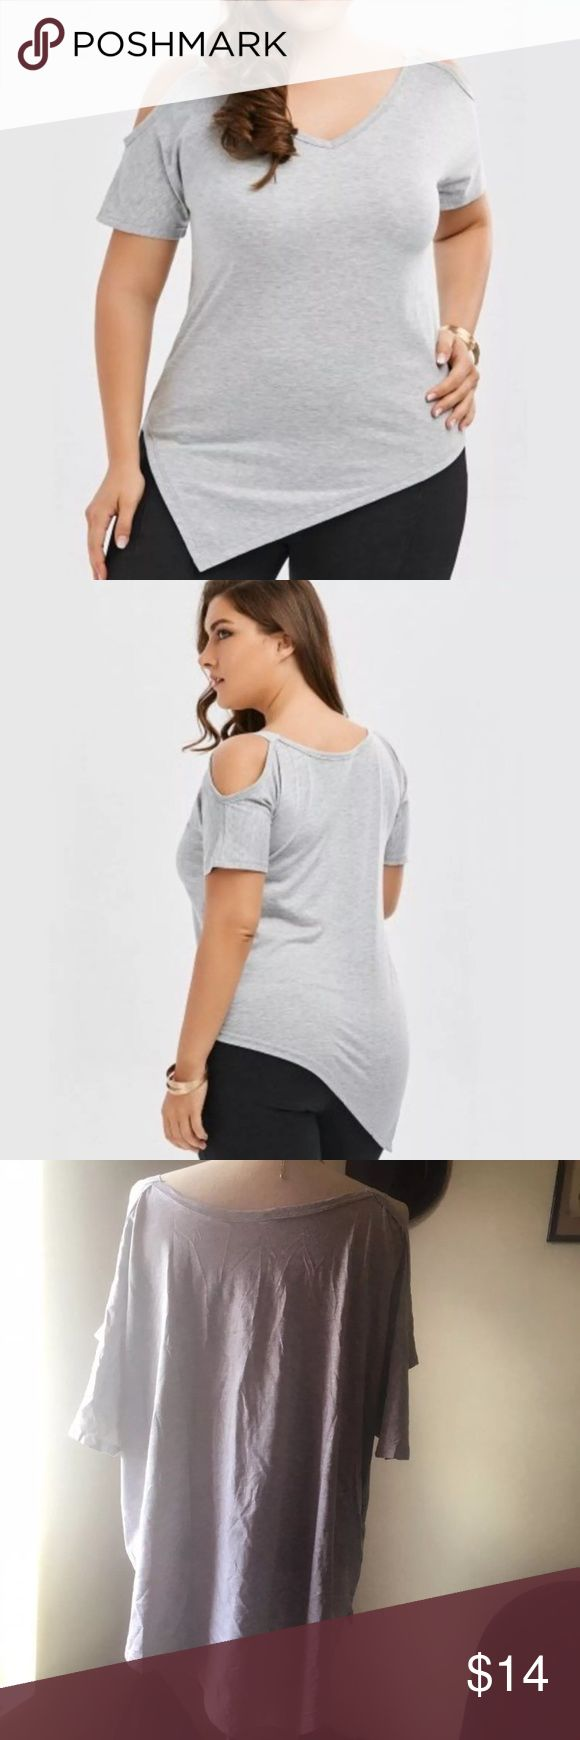 "Asymmetrical Grey Shirt BRAND NEW (ordered online, no tags) super cute cold shoulder tee with asymmetrical hem. Light grey with silver little straps on the shoulders. Chinese company measurement is 5x= size 22, 29.53"" long. Reasonable offers accepted. Tops"